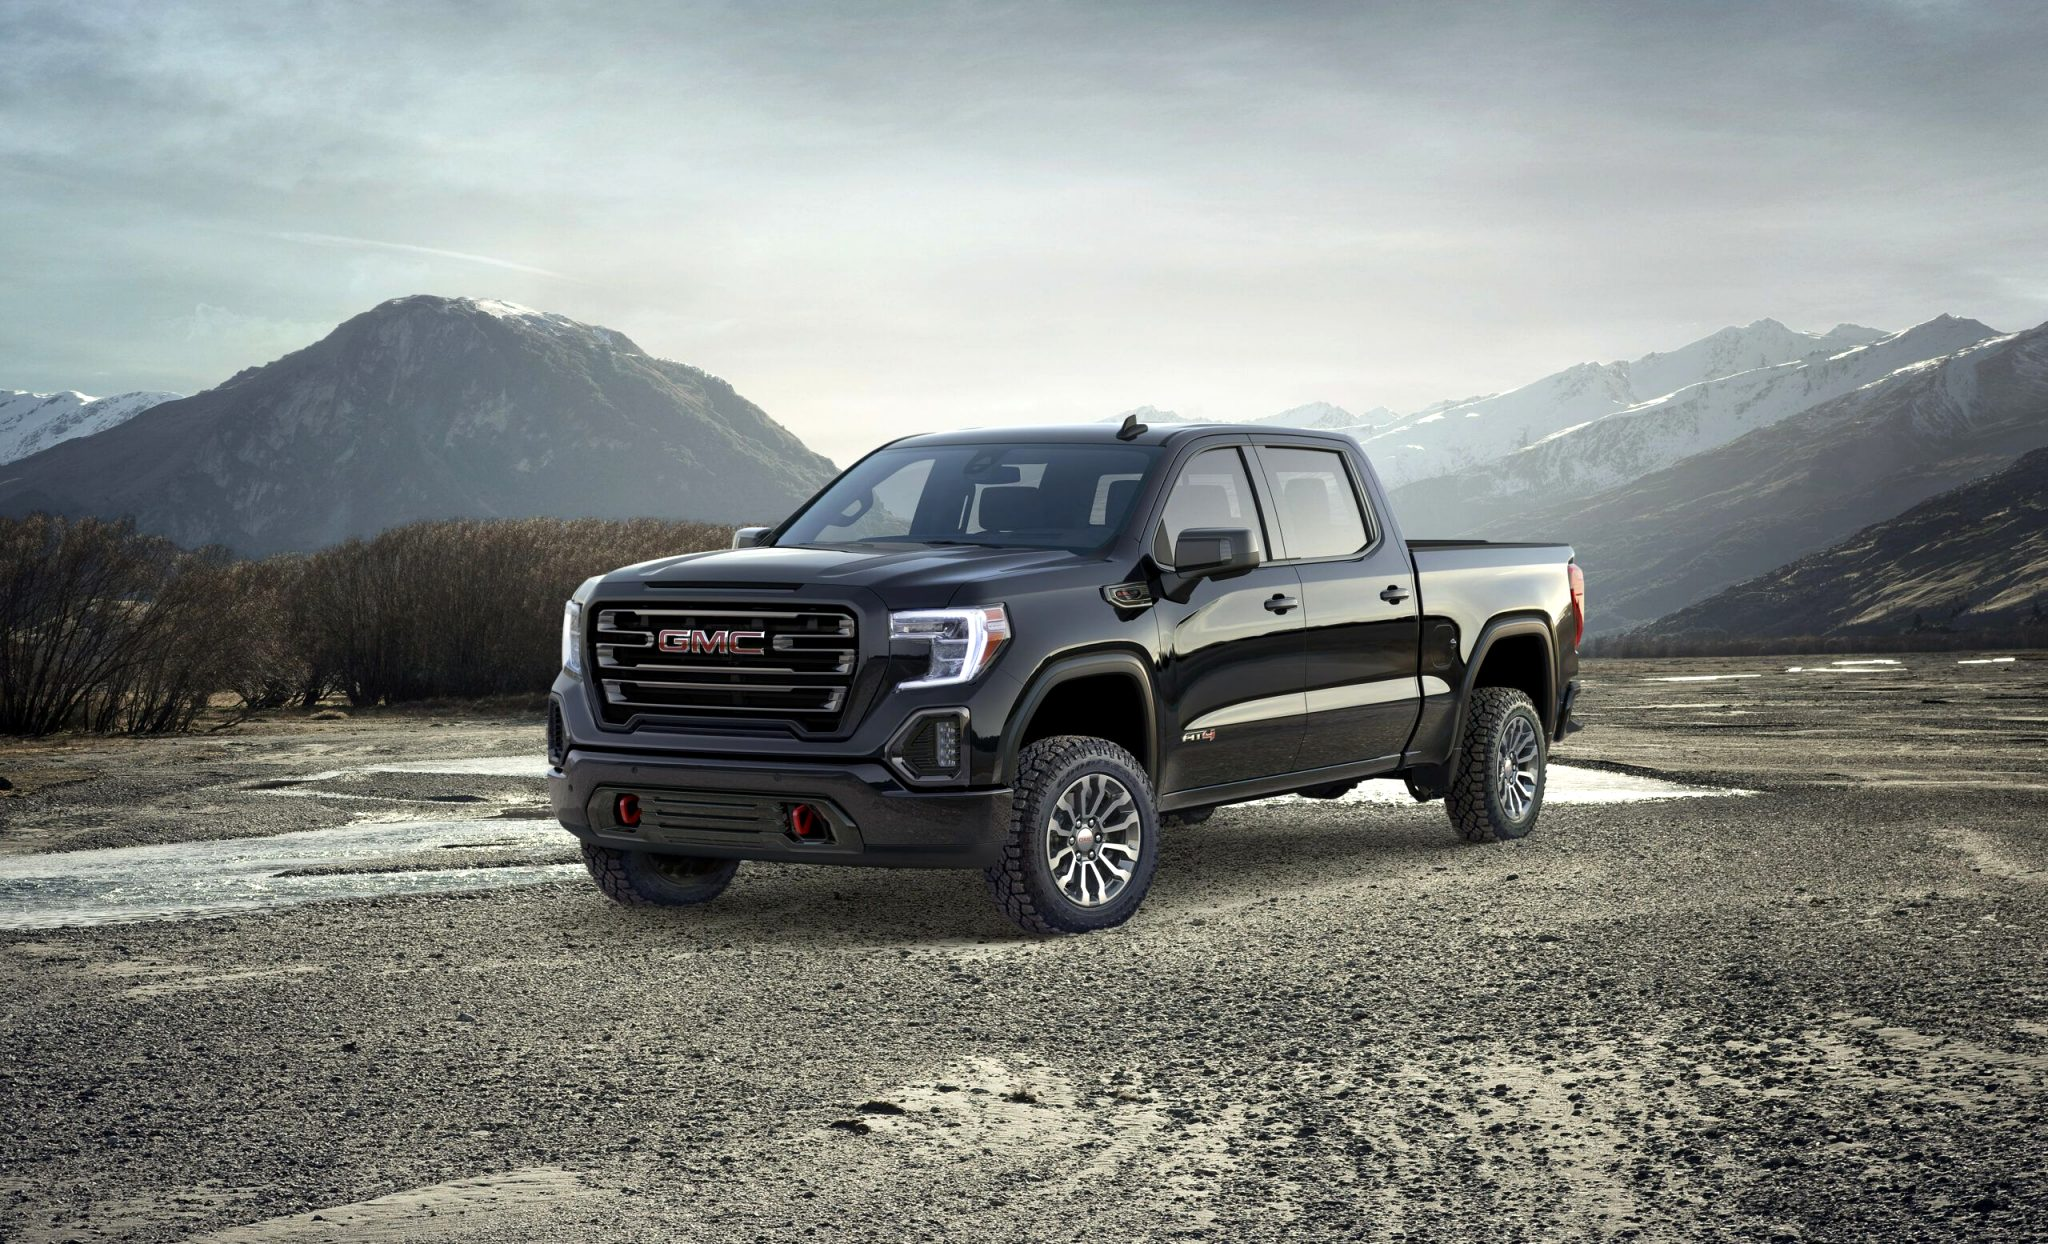 GMC pickup 2021 Price and Review